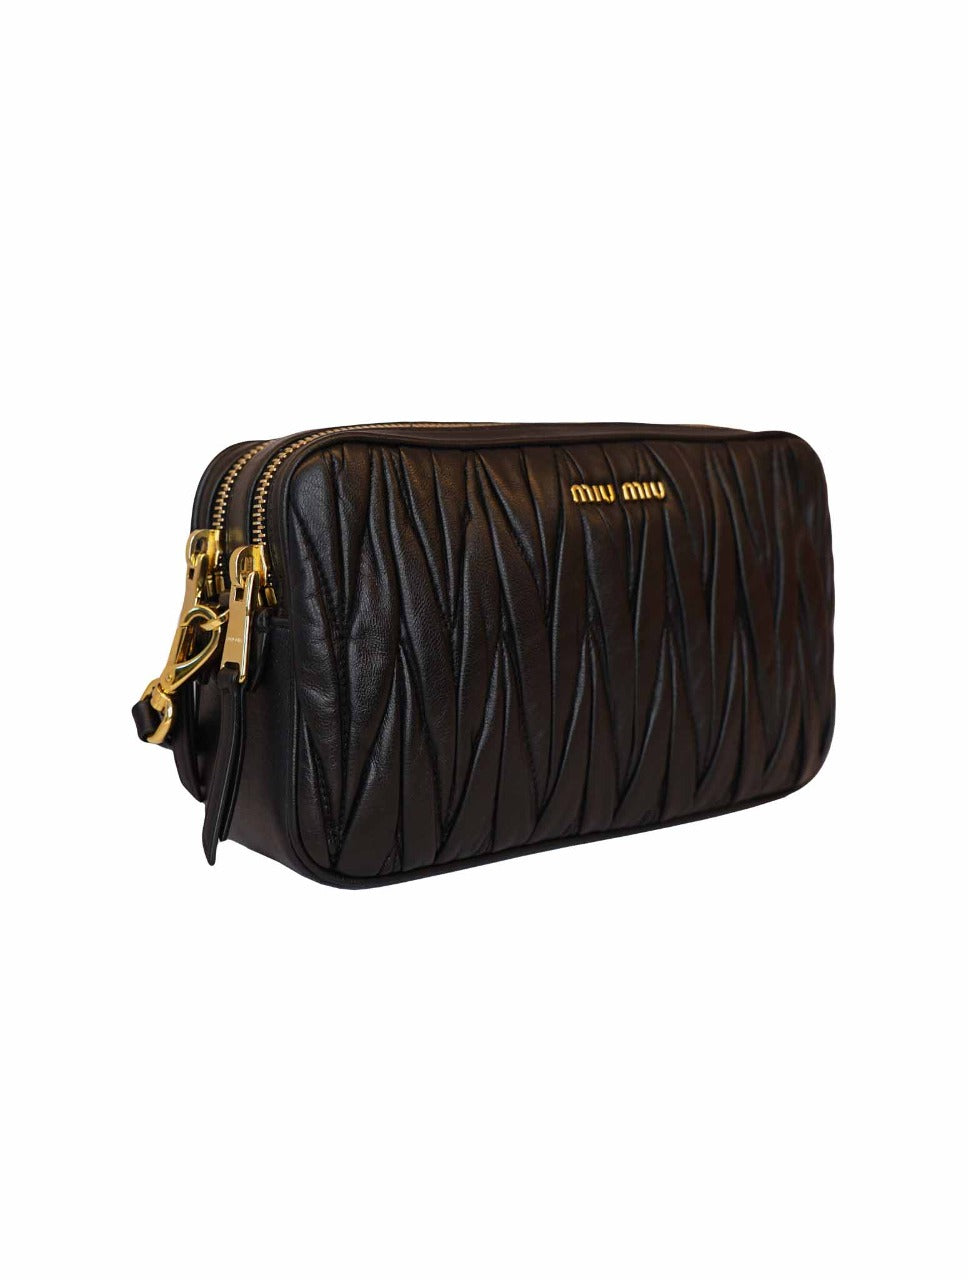 BLACK MATELASSE NAPPA LEATHER DOUBLE ZIPPER CROSSBODY BAG